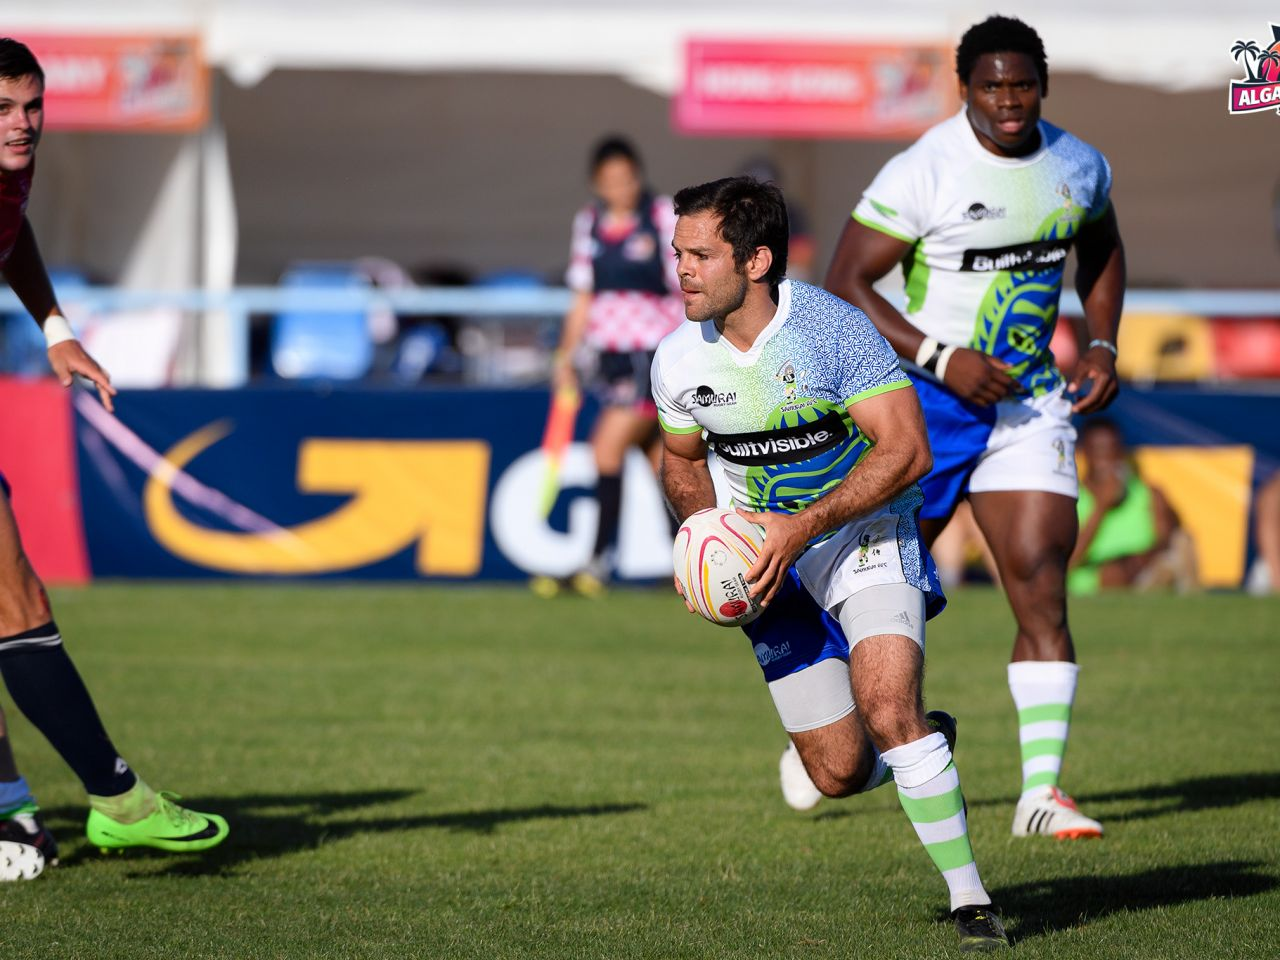 Algarve Sevens returns